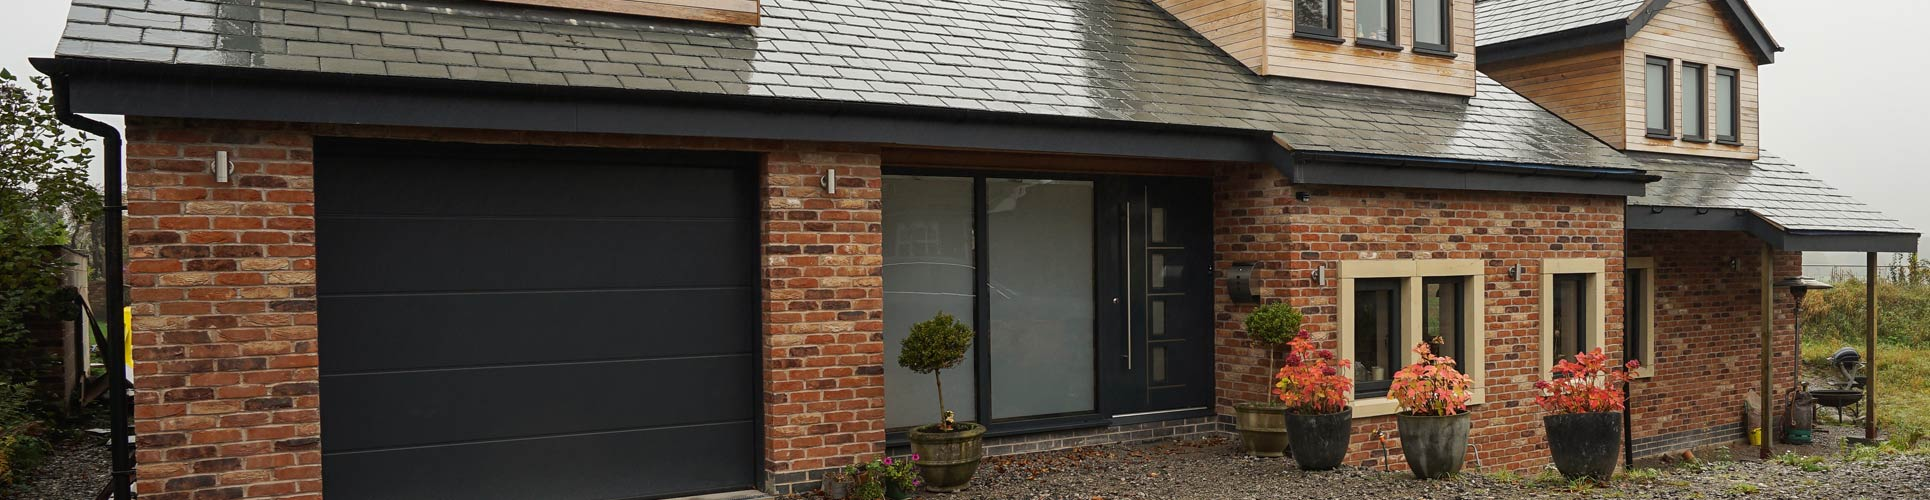 Aluminium window and door installation, Lymm